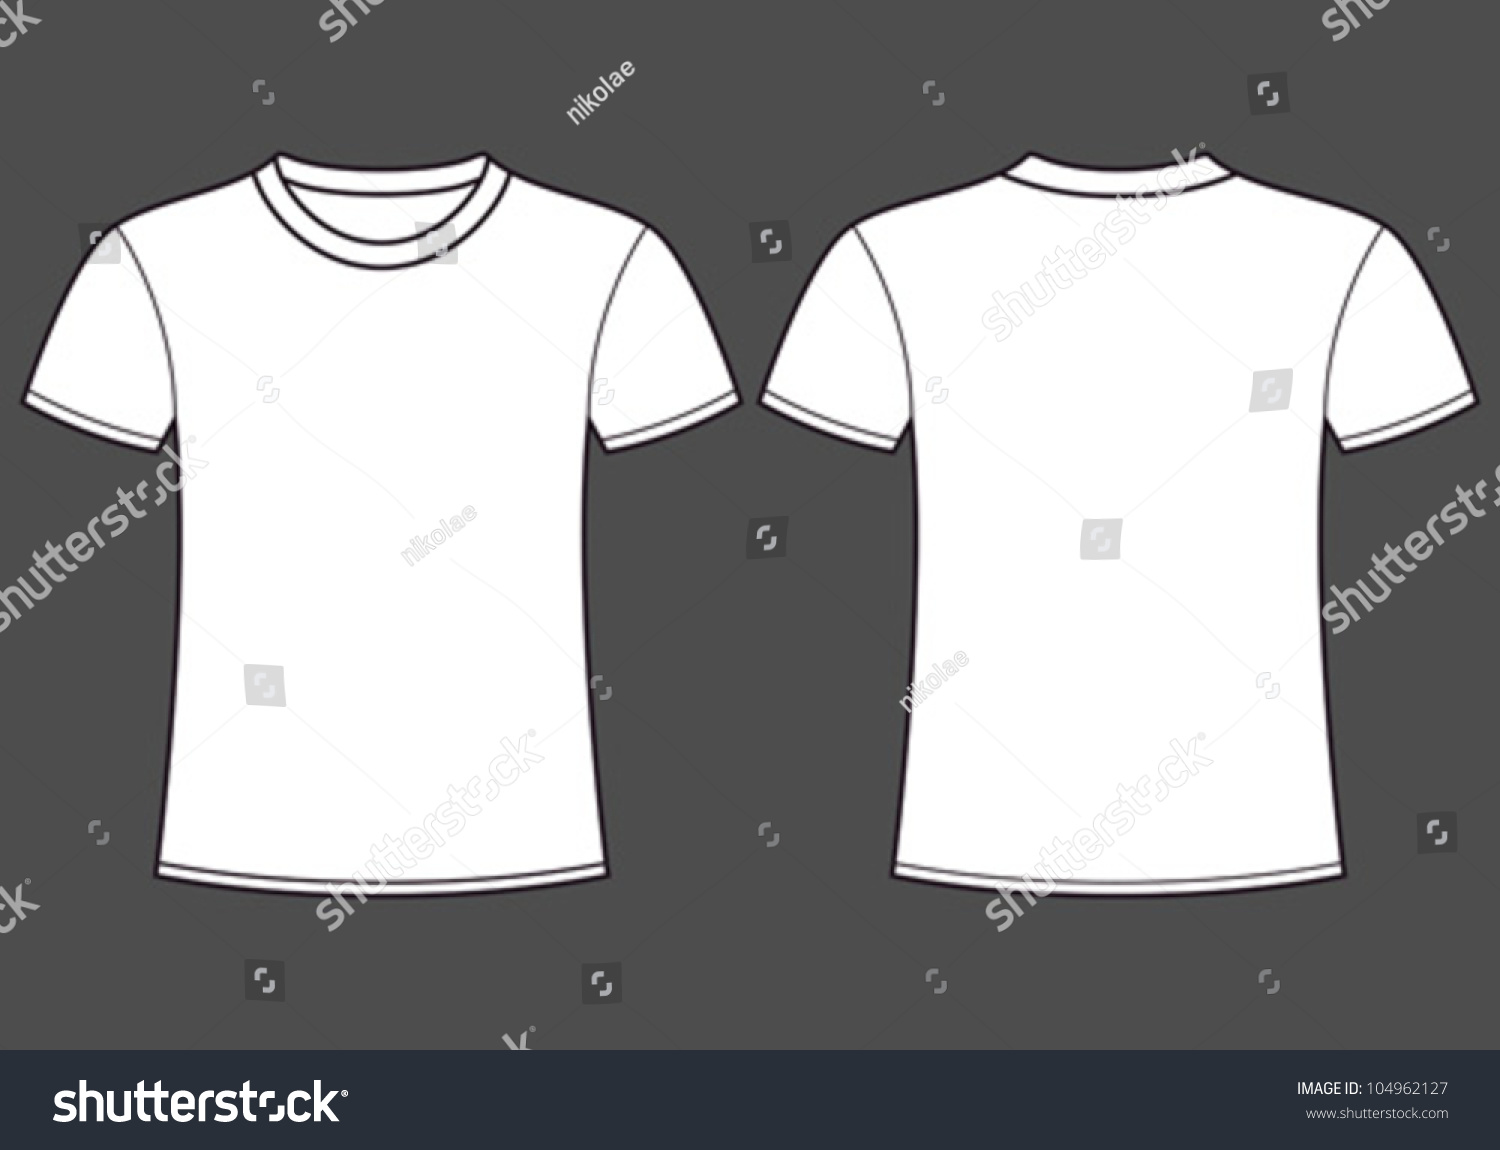 Blank tshirt template front back stock vector 104962127 for White t shirt template front and back